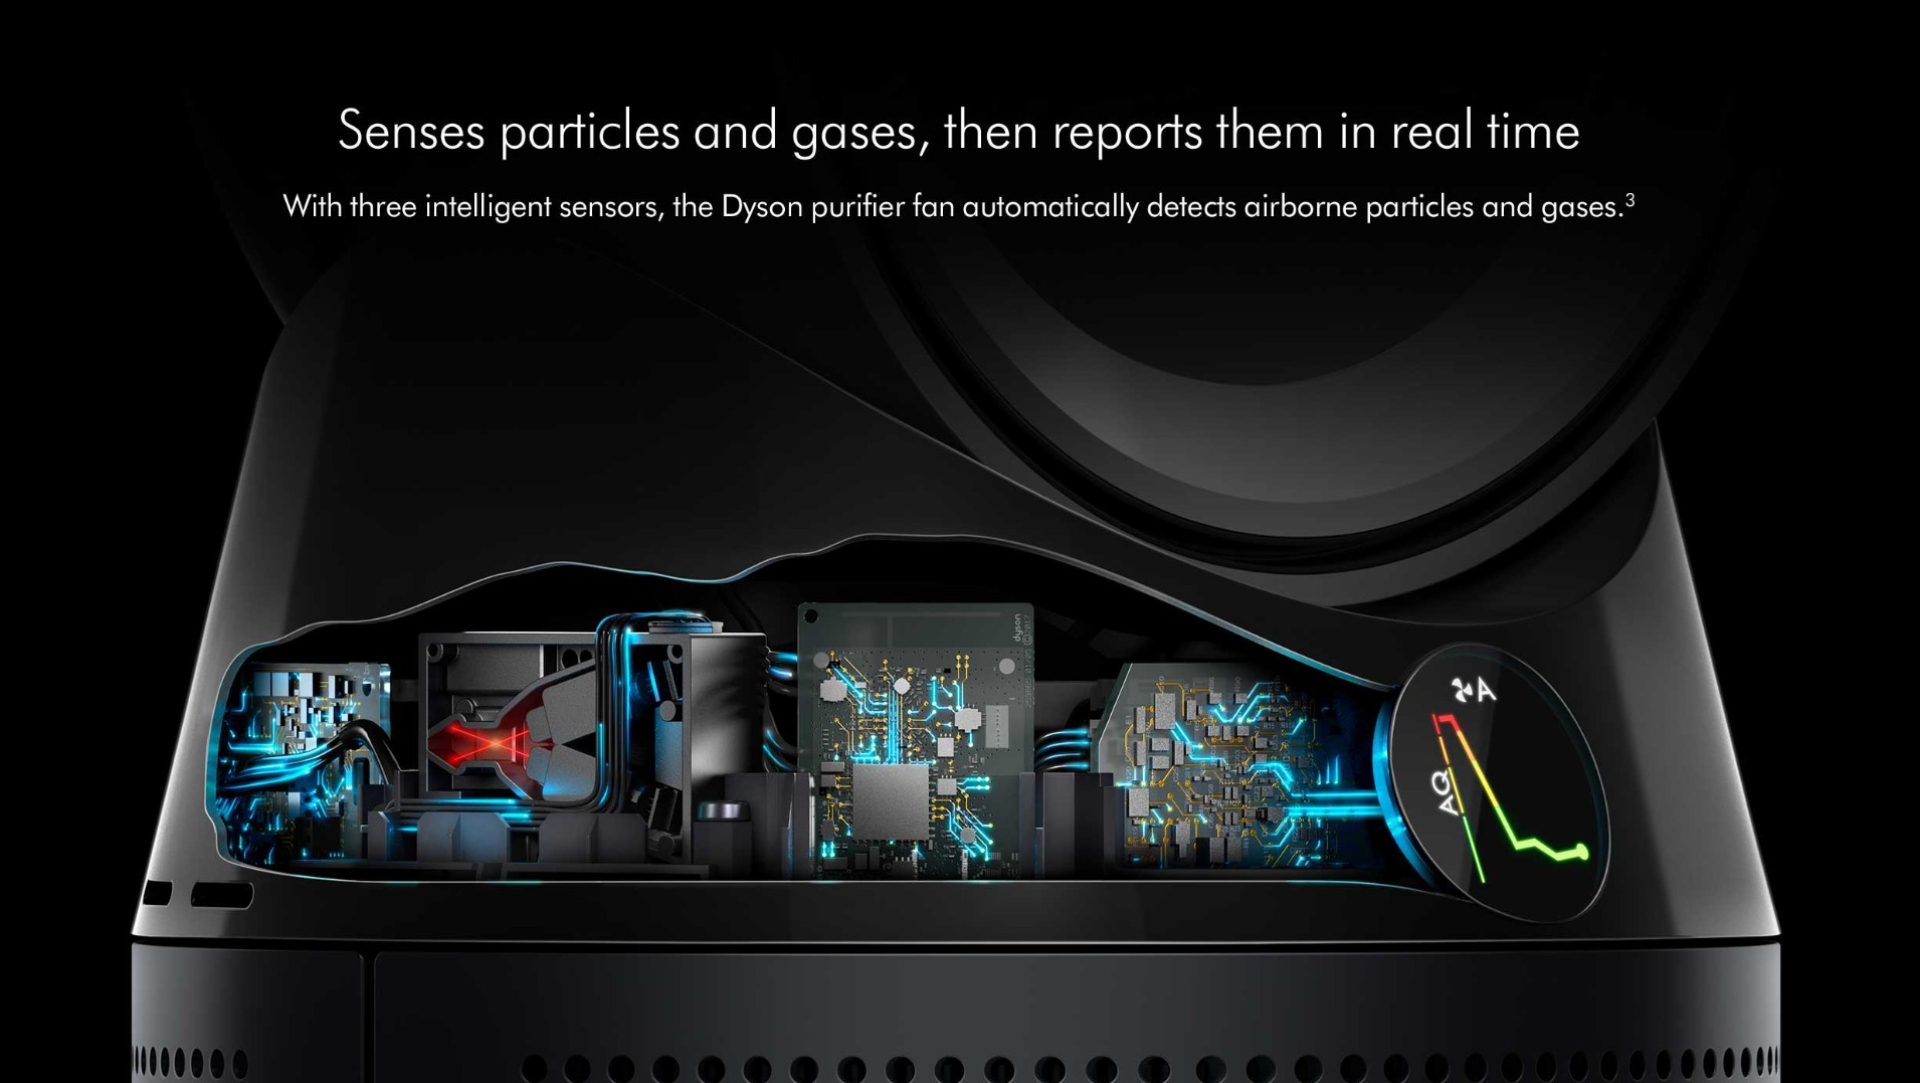 Sense particles and gases, then reports them in real time.